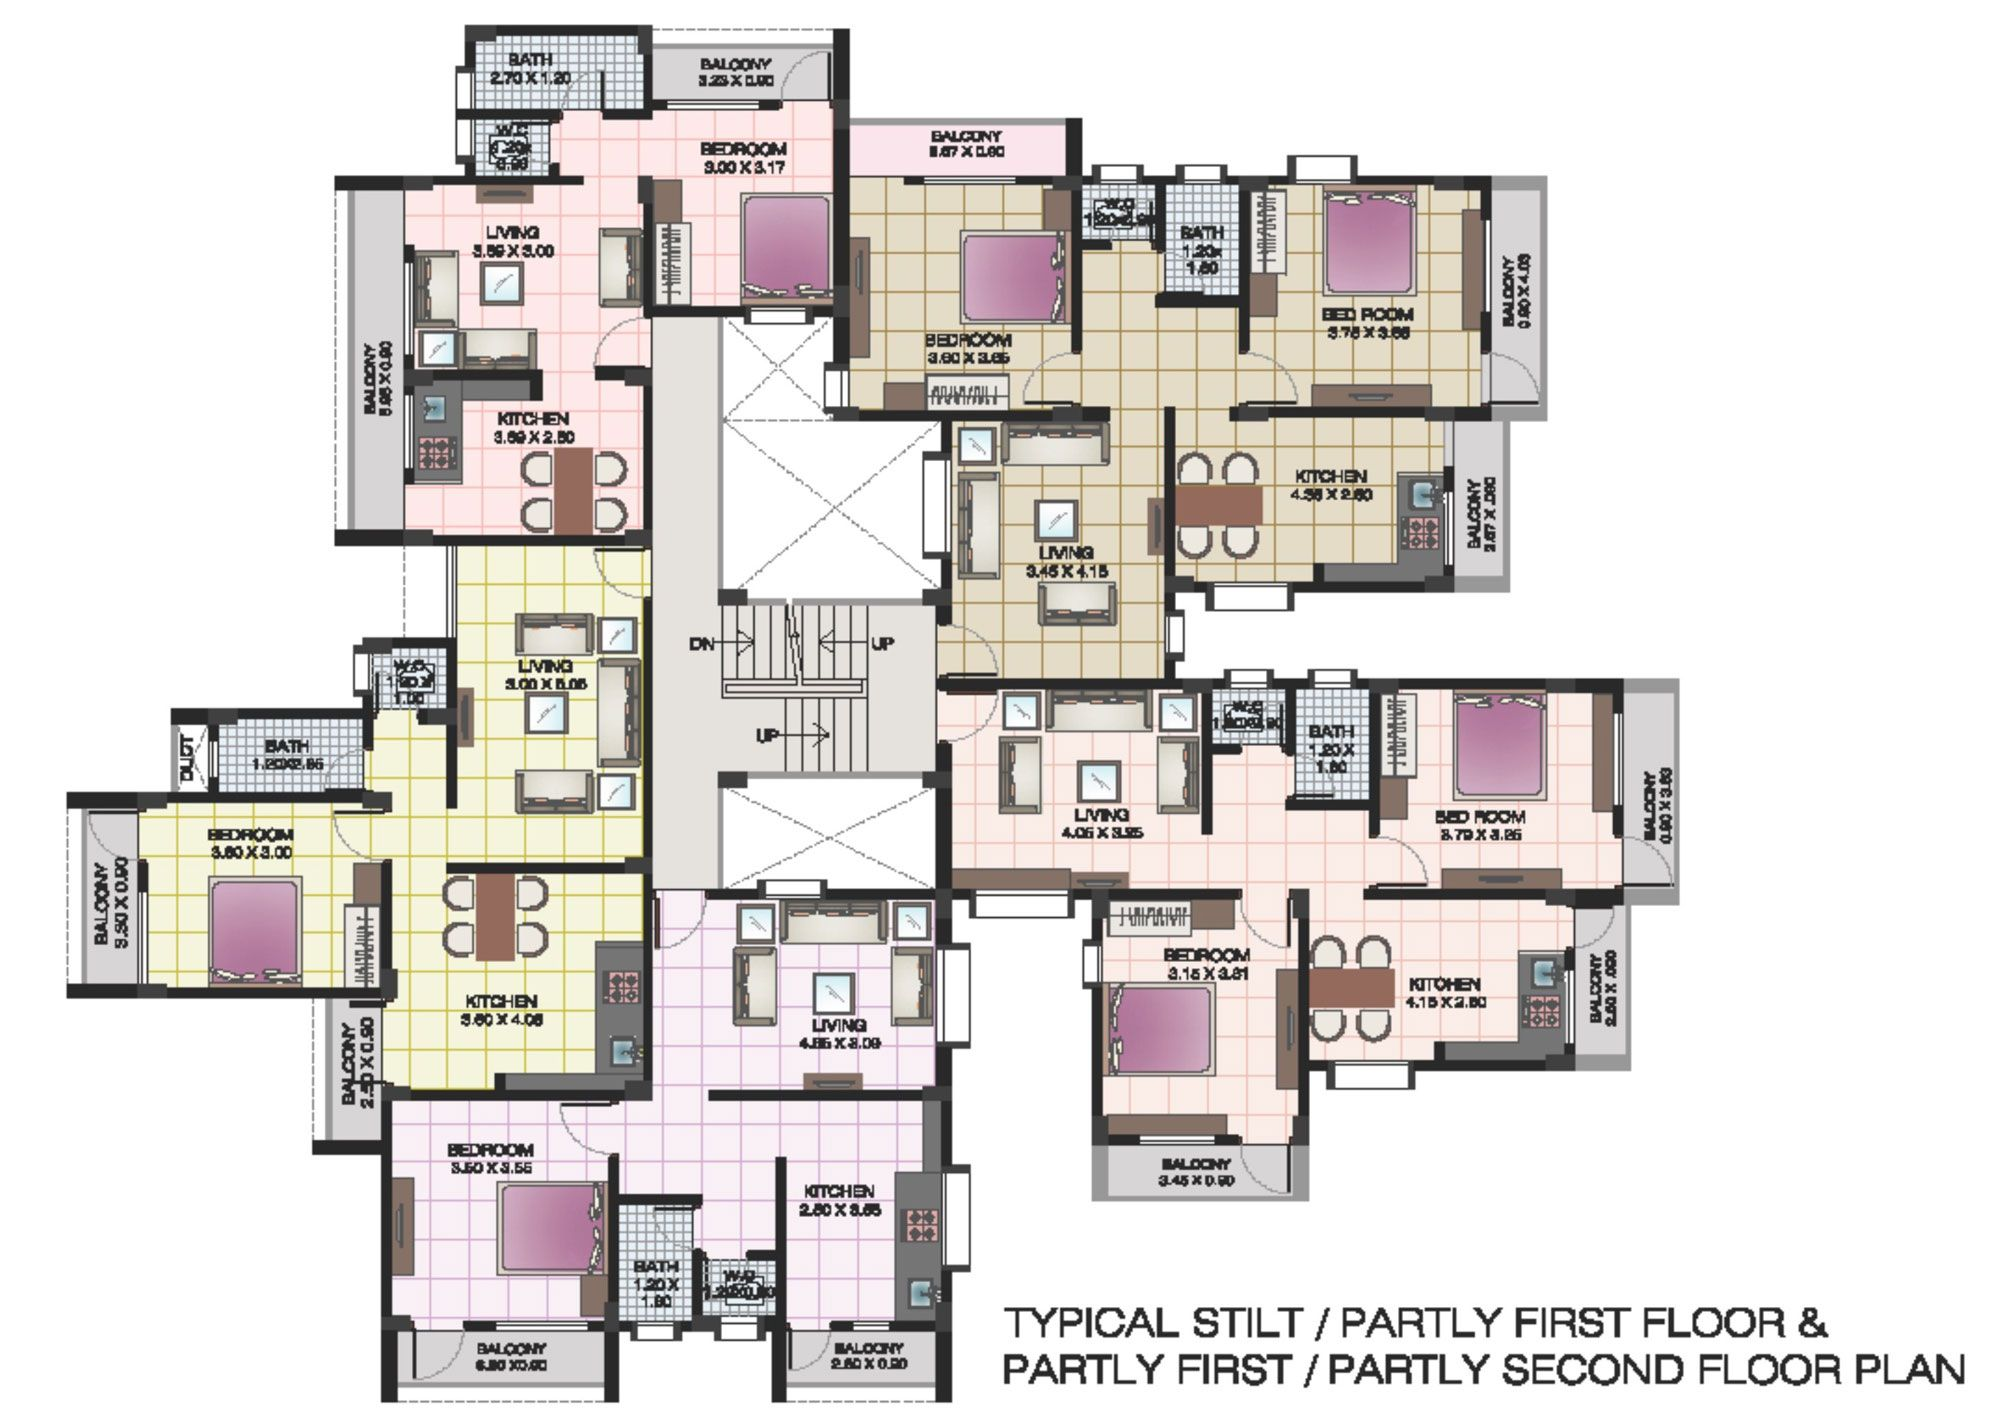 Apartment Structures Apartment Floor Plans Of Shri